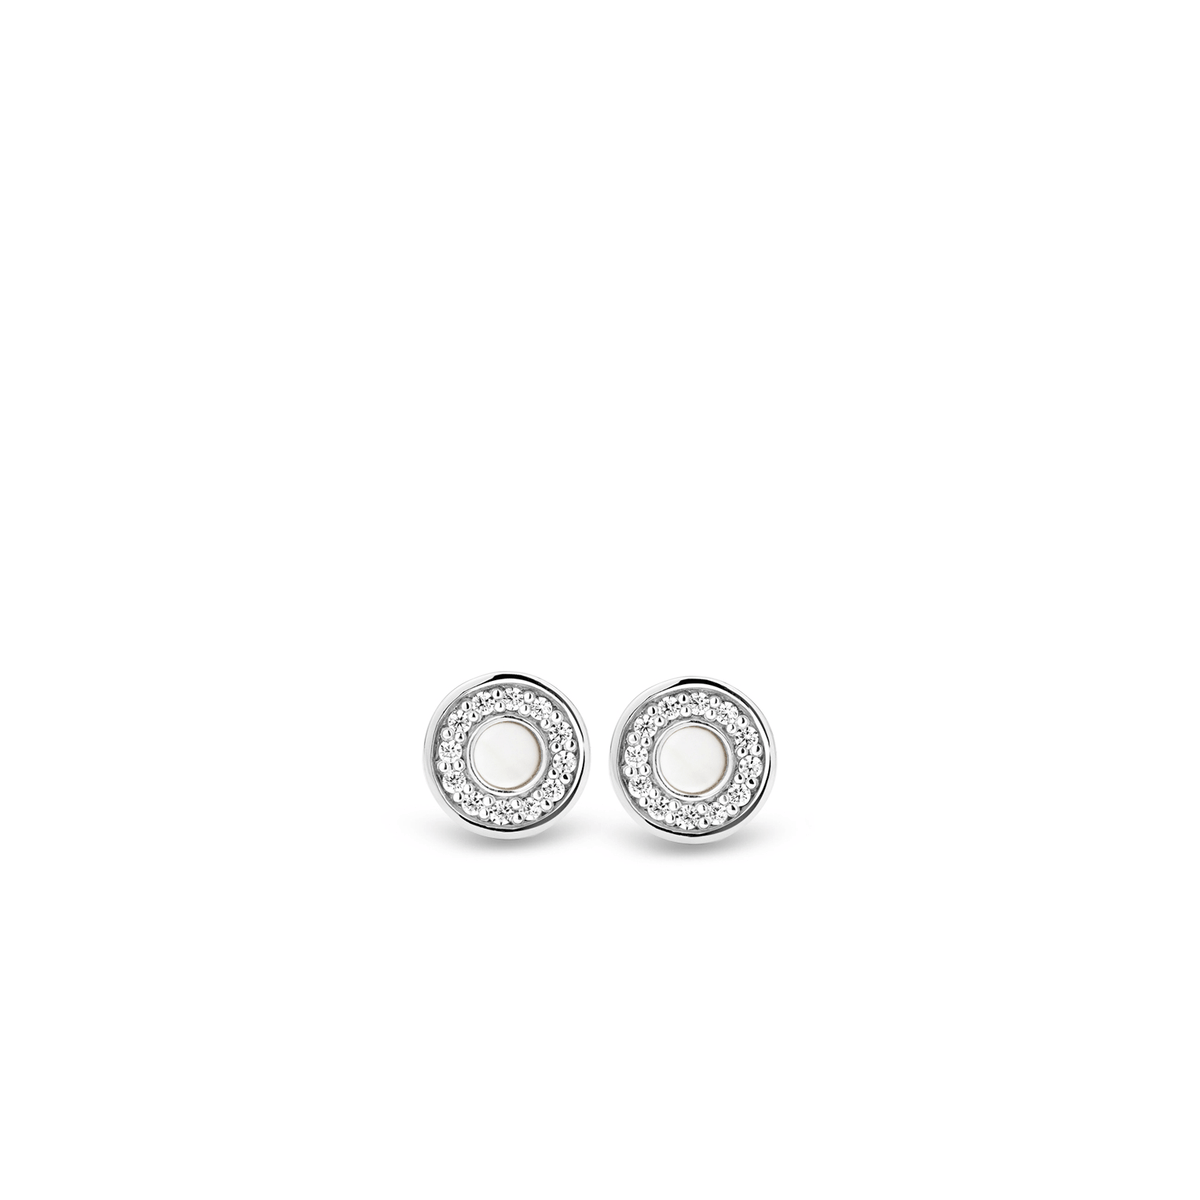 TI SENTO - Milano Earrings 7533MW